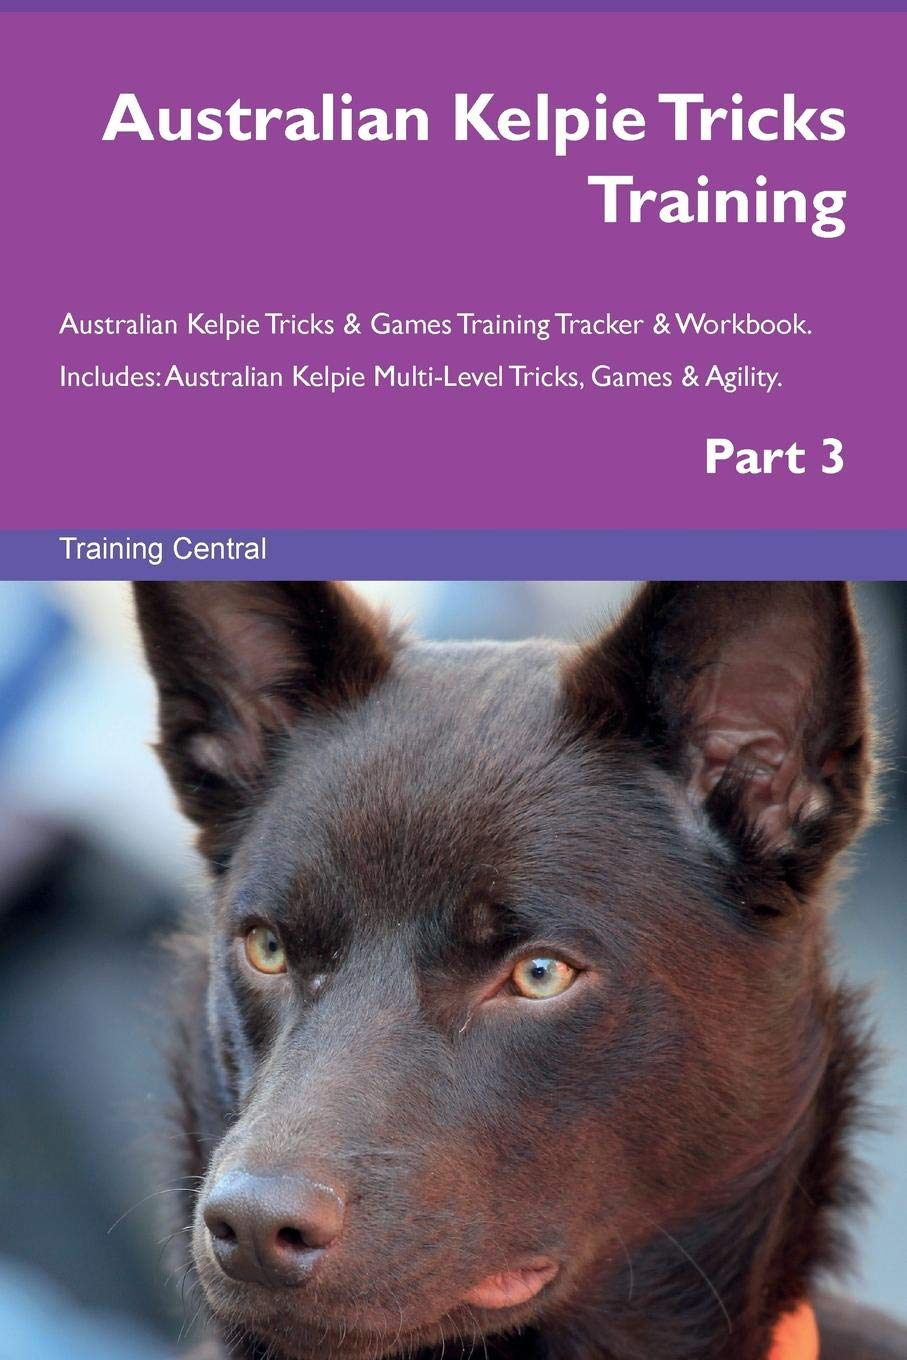 Australian Kelpie Tricks Training Australian Kelpie Tricks & Games Training Tracker & Workbook.  Includes: Australian Kelpie Multi-Level Tricks, Games & Agility. Part 3 PDF ePub book